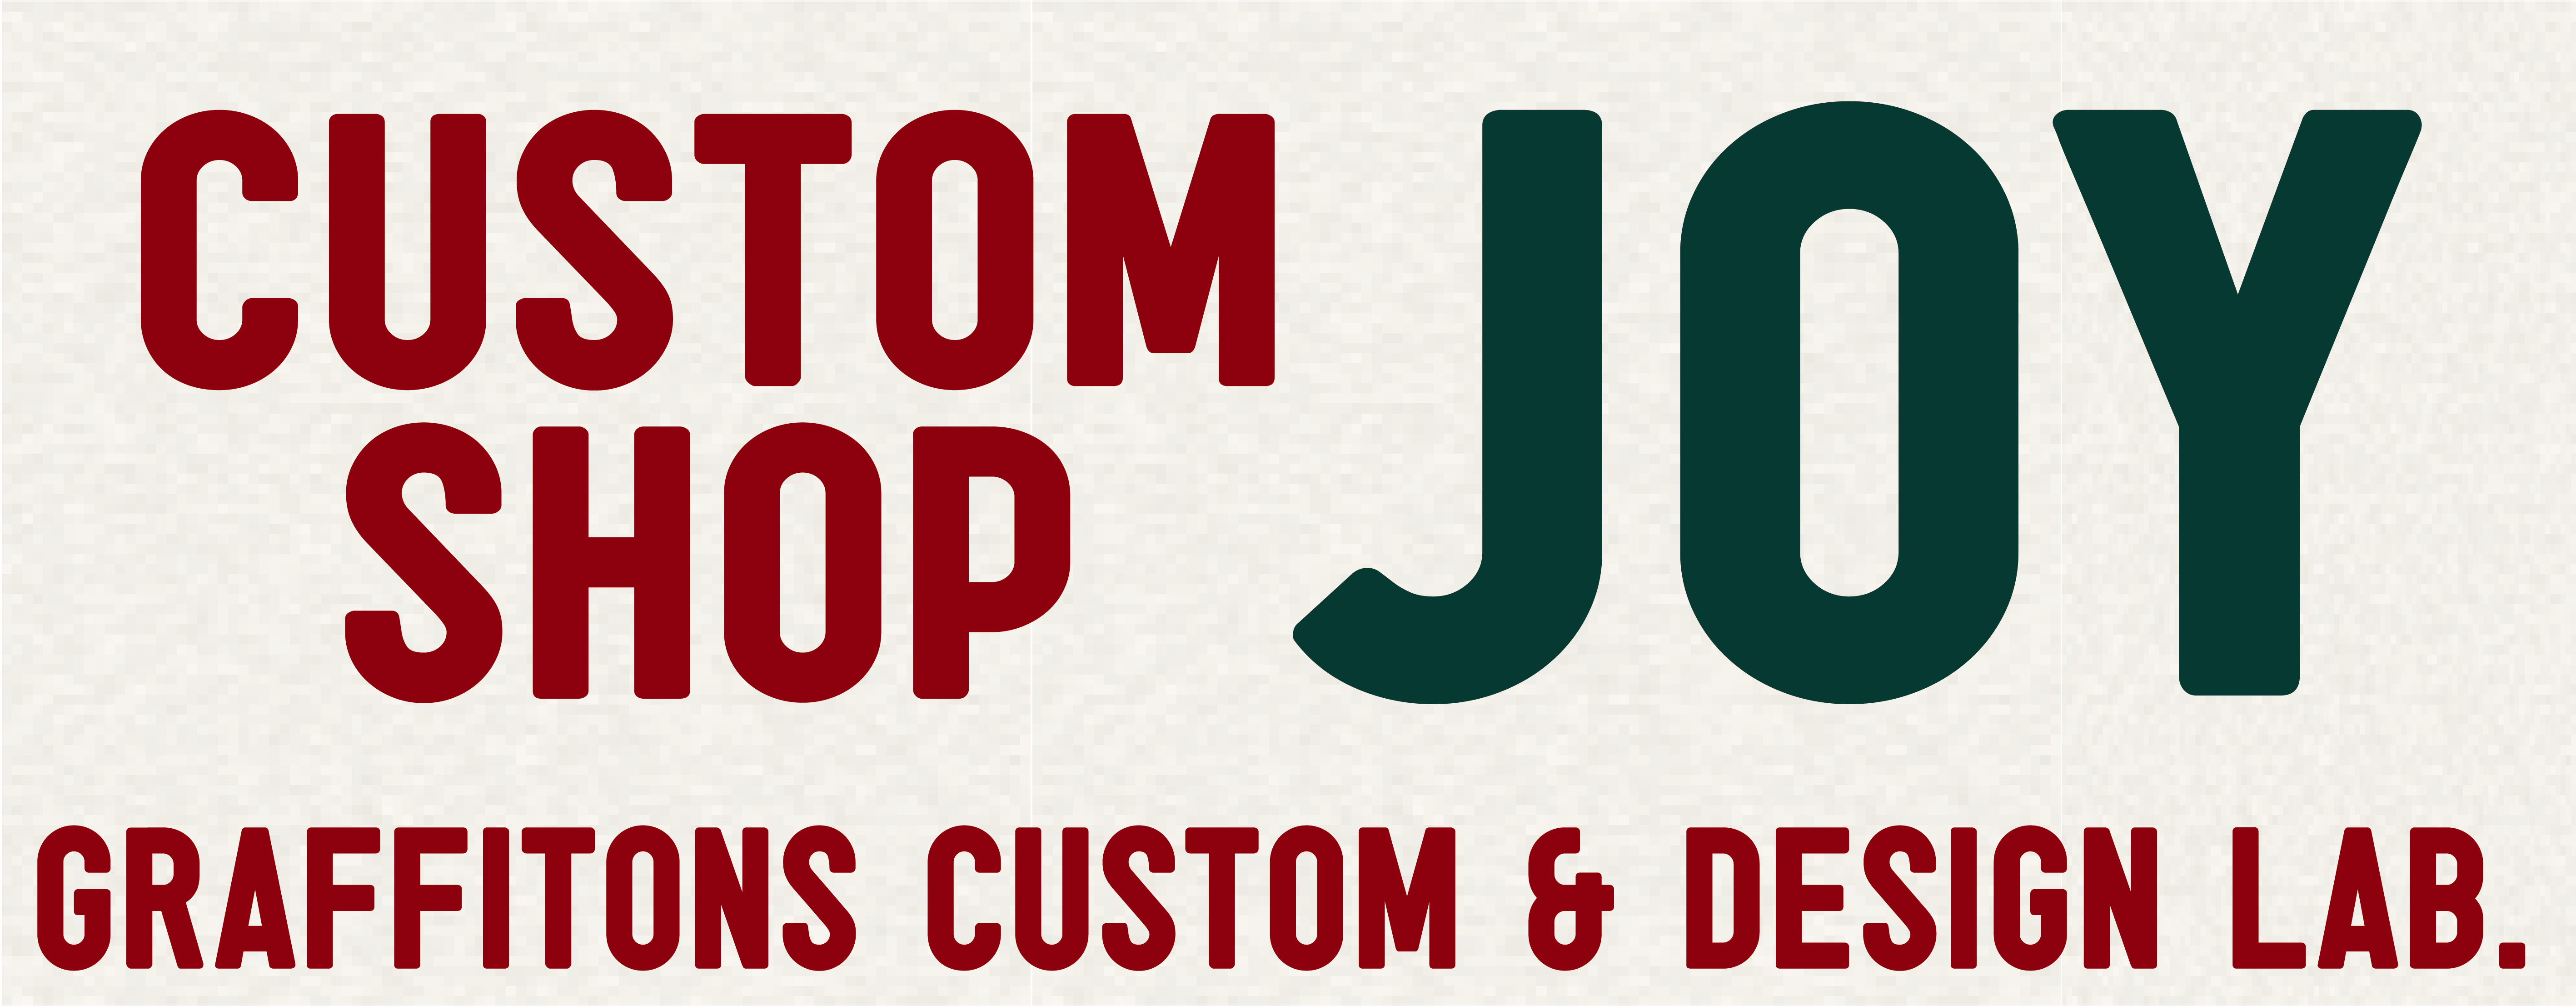 CUSTOM SHOP JOY